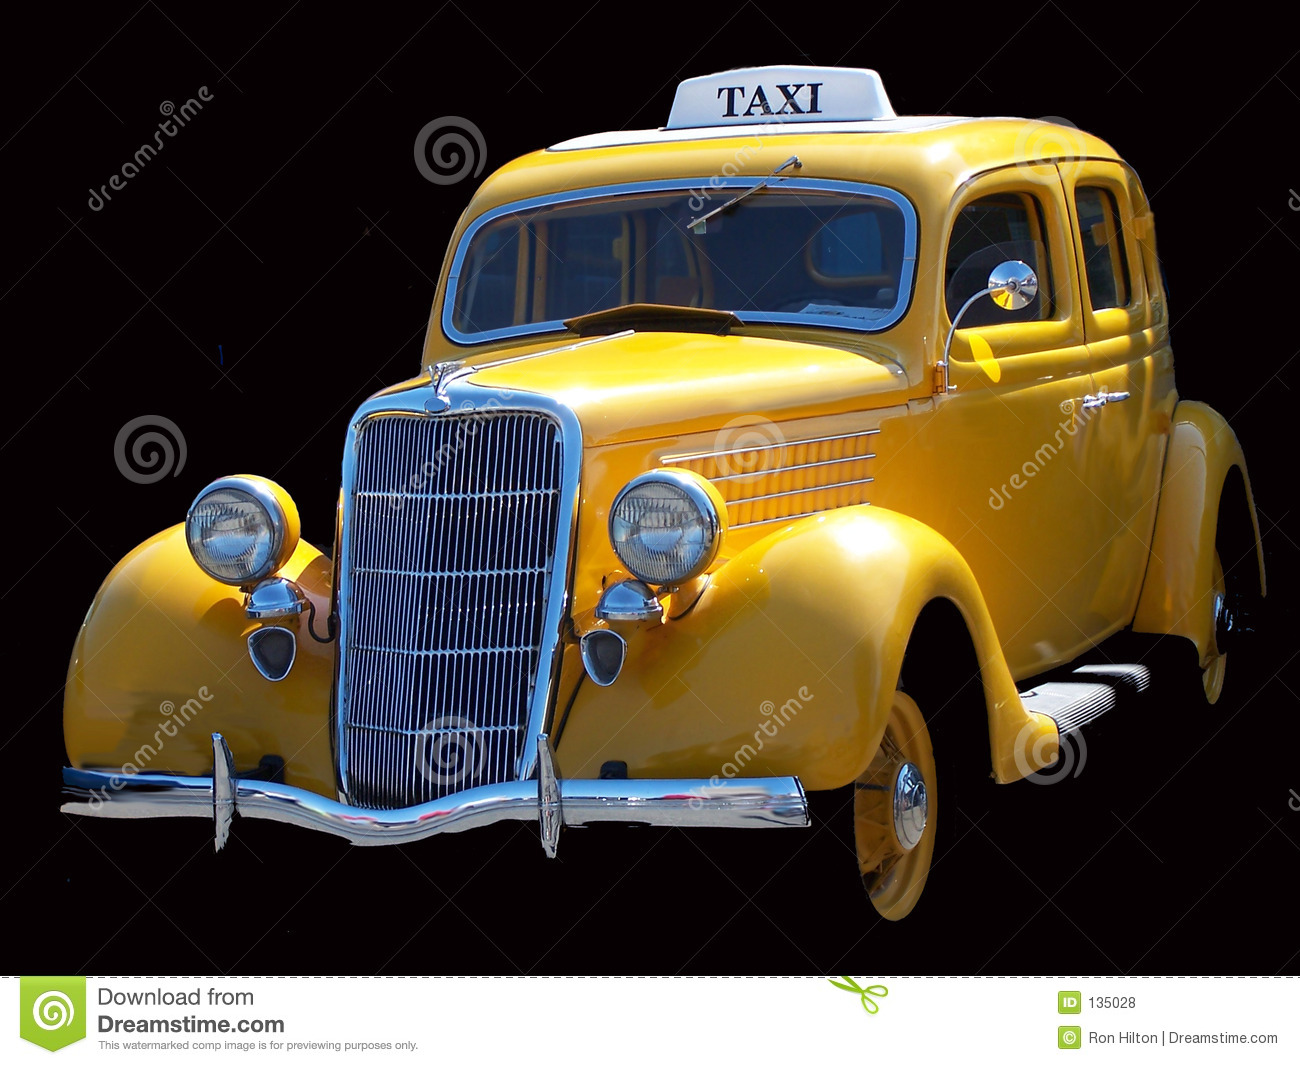 Vintage Taxi Cab stock photo. Image of isolated, yellow ...